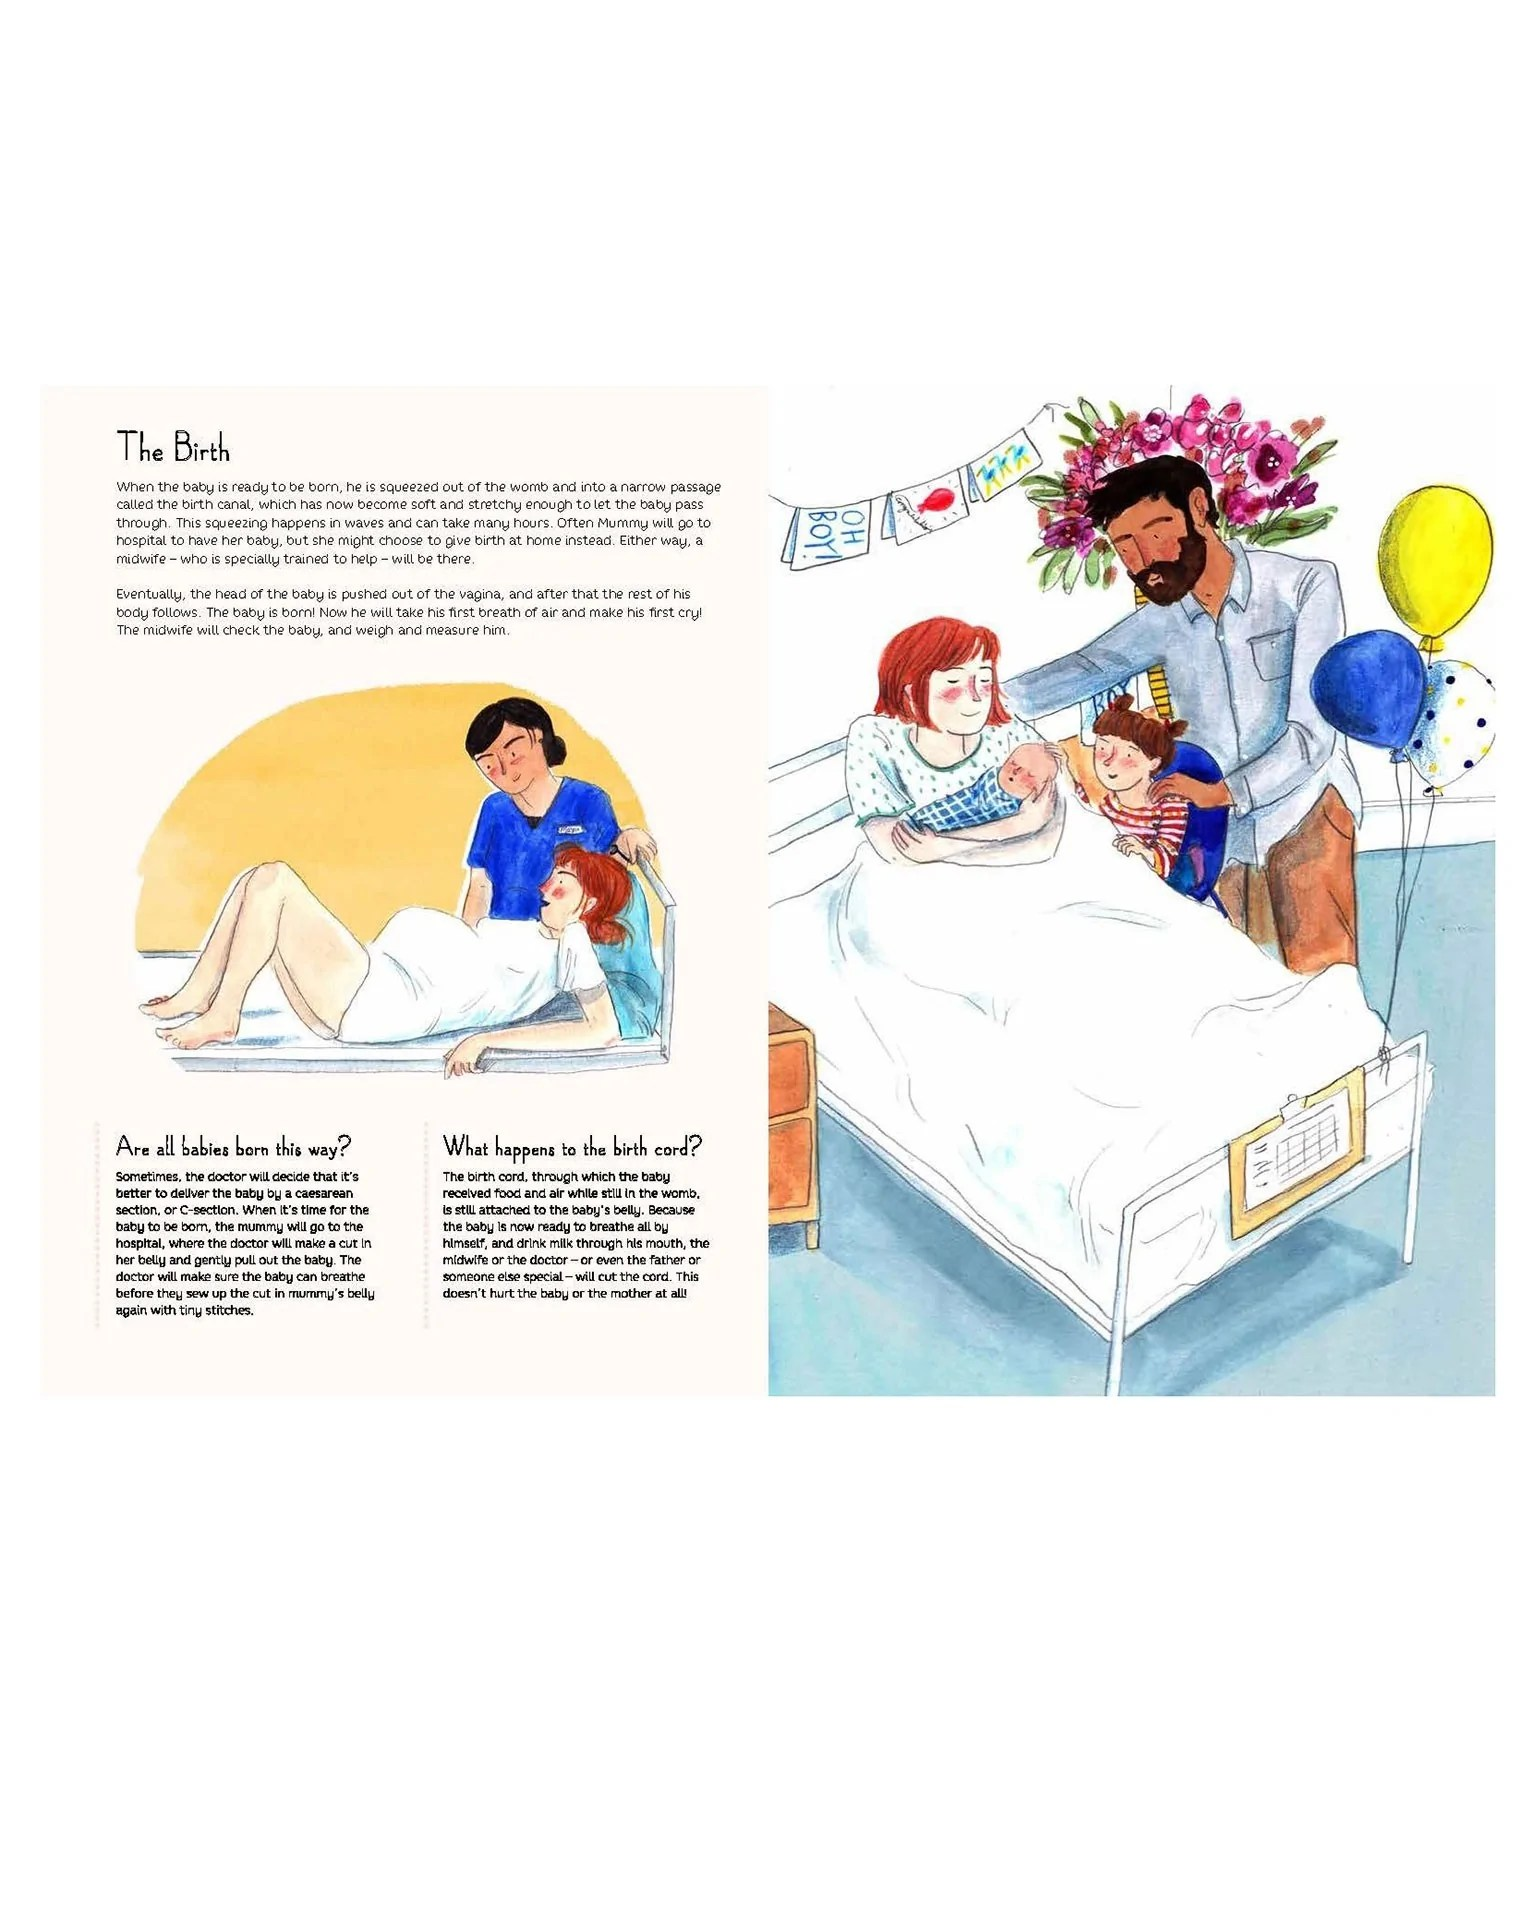 9 months a month by month guide to pregnancy for the family to by the quarto group [ 1536 x 1920 Pixel ]